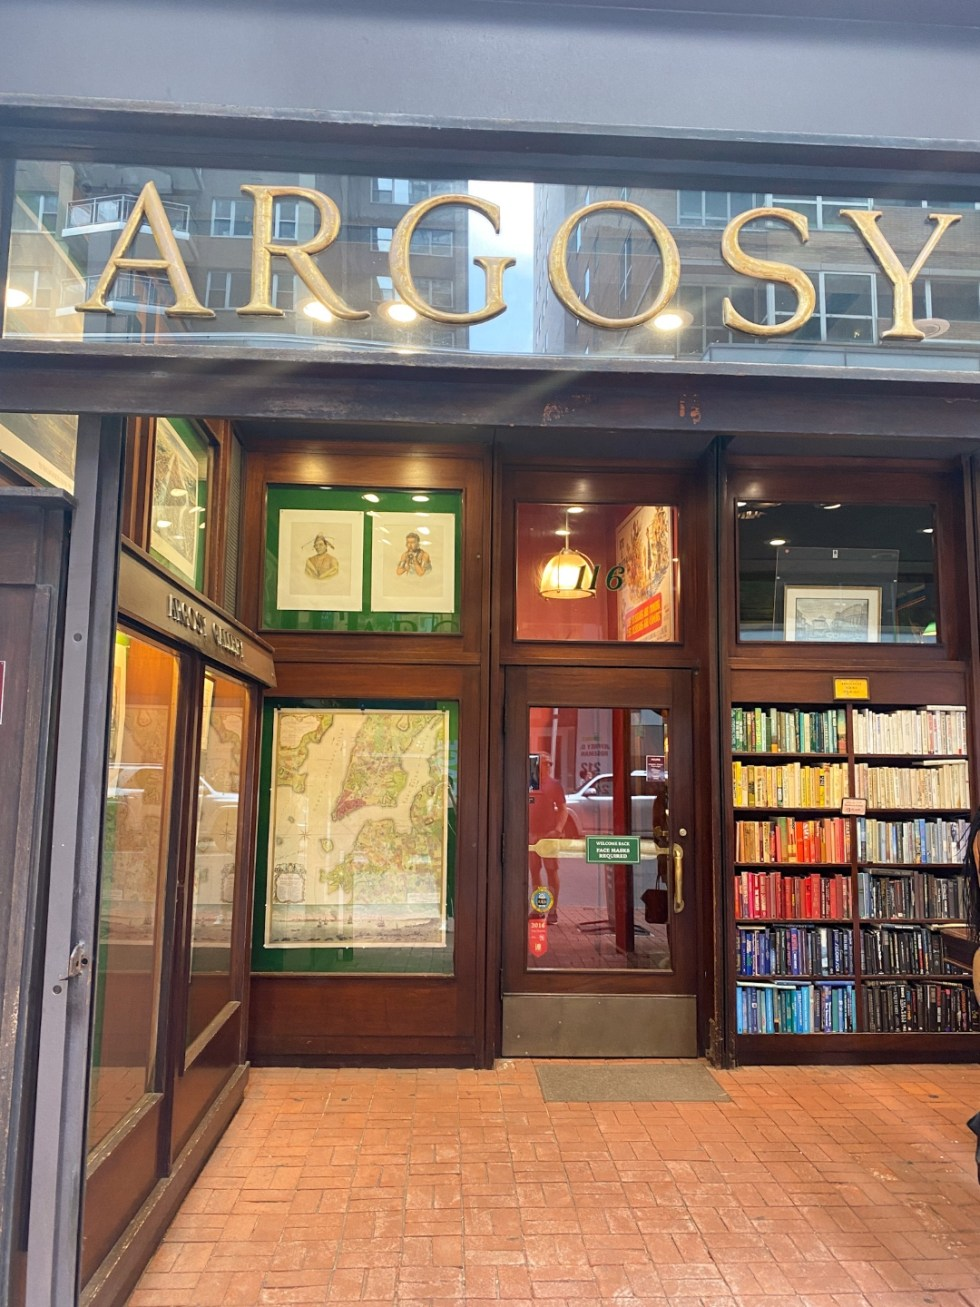 NYC Summer Weekend: Things to Do in NYC in the Summer - I'm Fixin' To - @imfixintoblog   NYC Summer Weekend by popular NC travel blog, I'm Fixin' To: image of the Argosy book store.